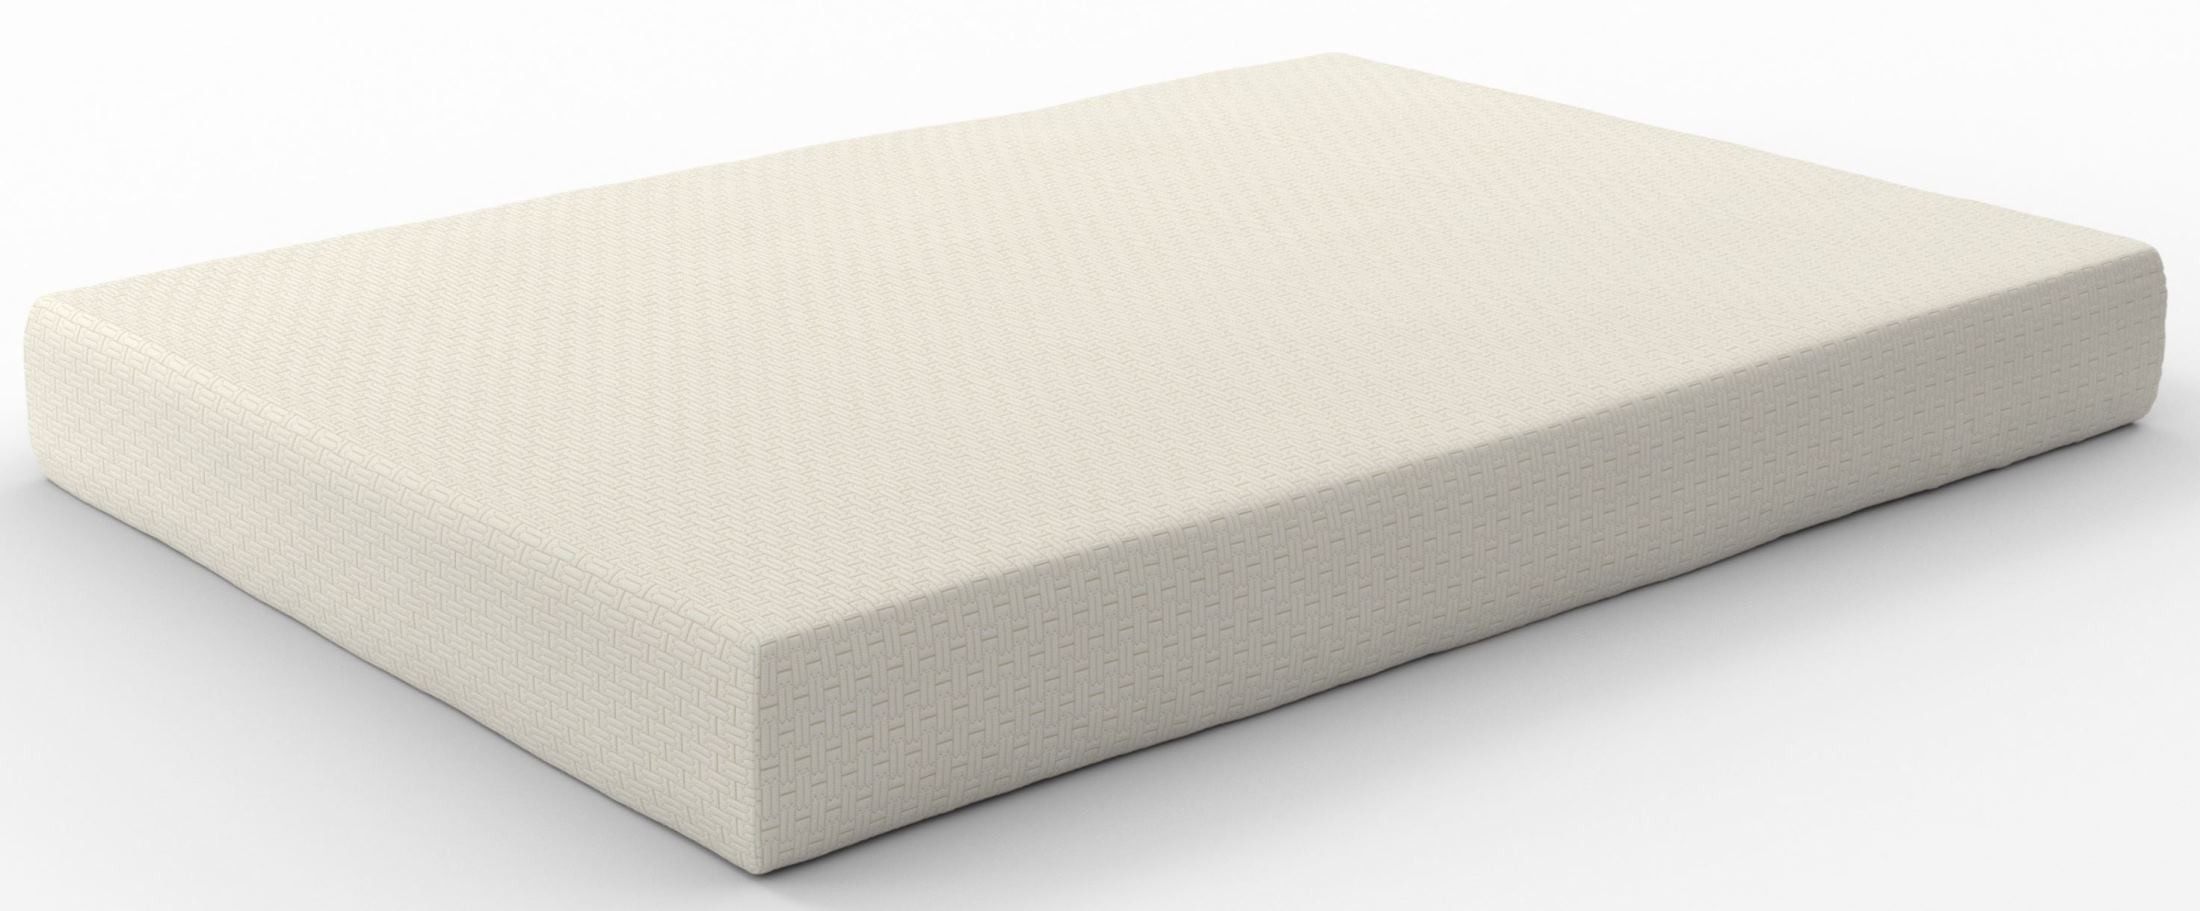 8 Inch Foam Mattress White King Mattress From Ashley Coleman Furniture